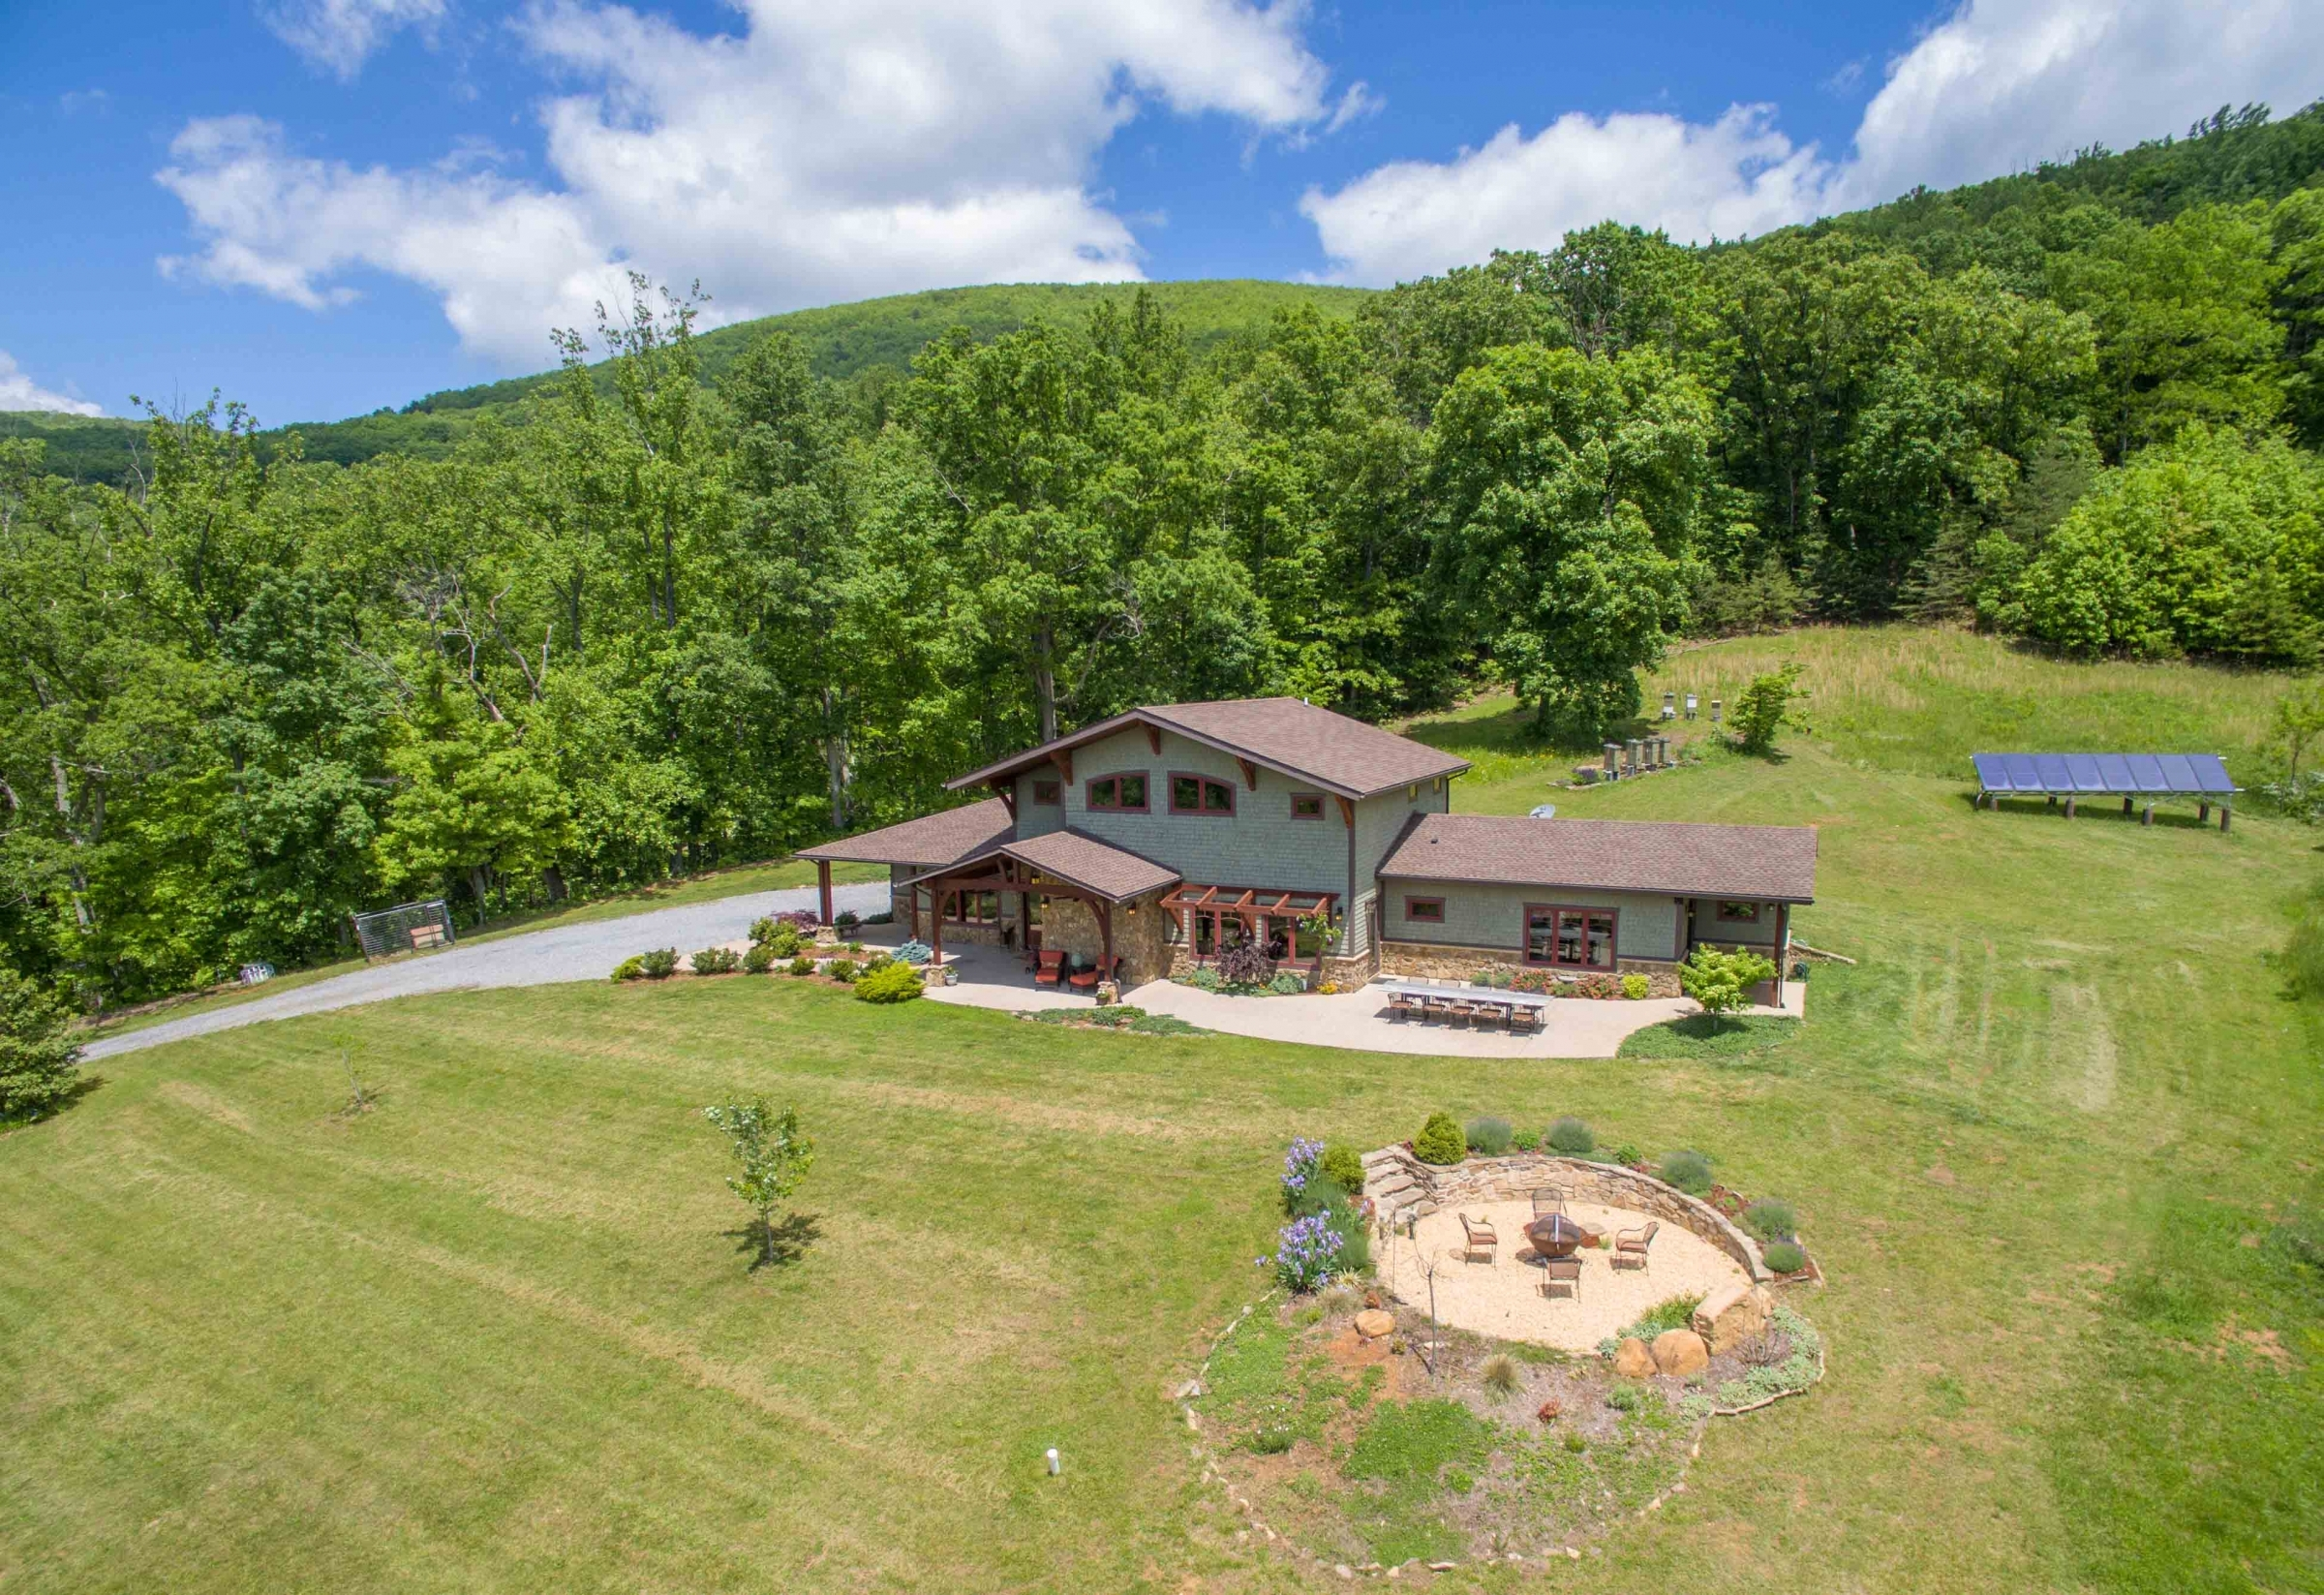 example of aerial view of complete home site development in Bedford County by Timber Ridge Craftsmen Inc